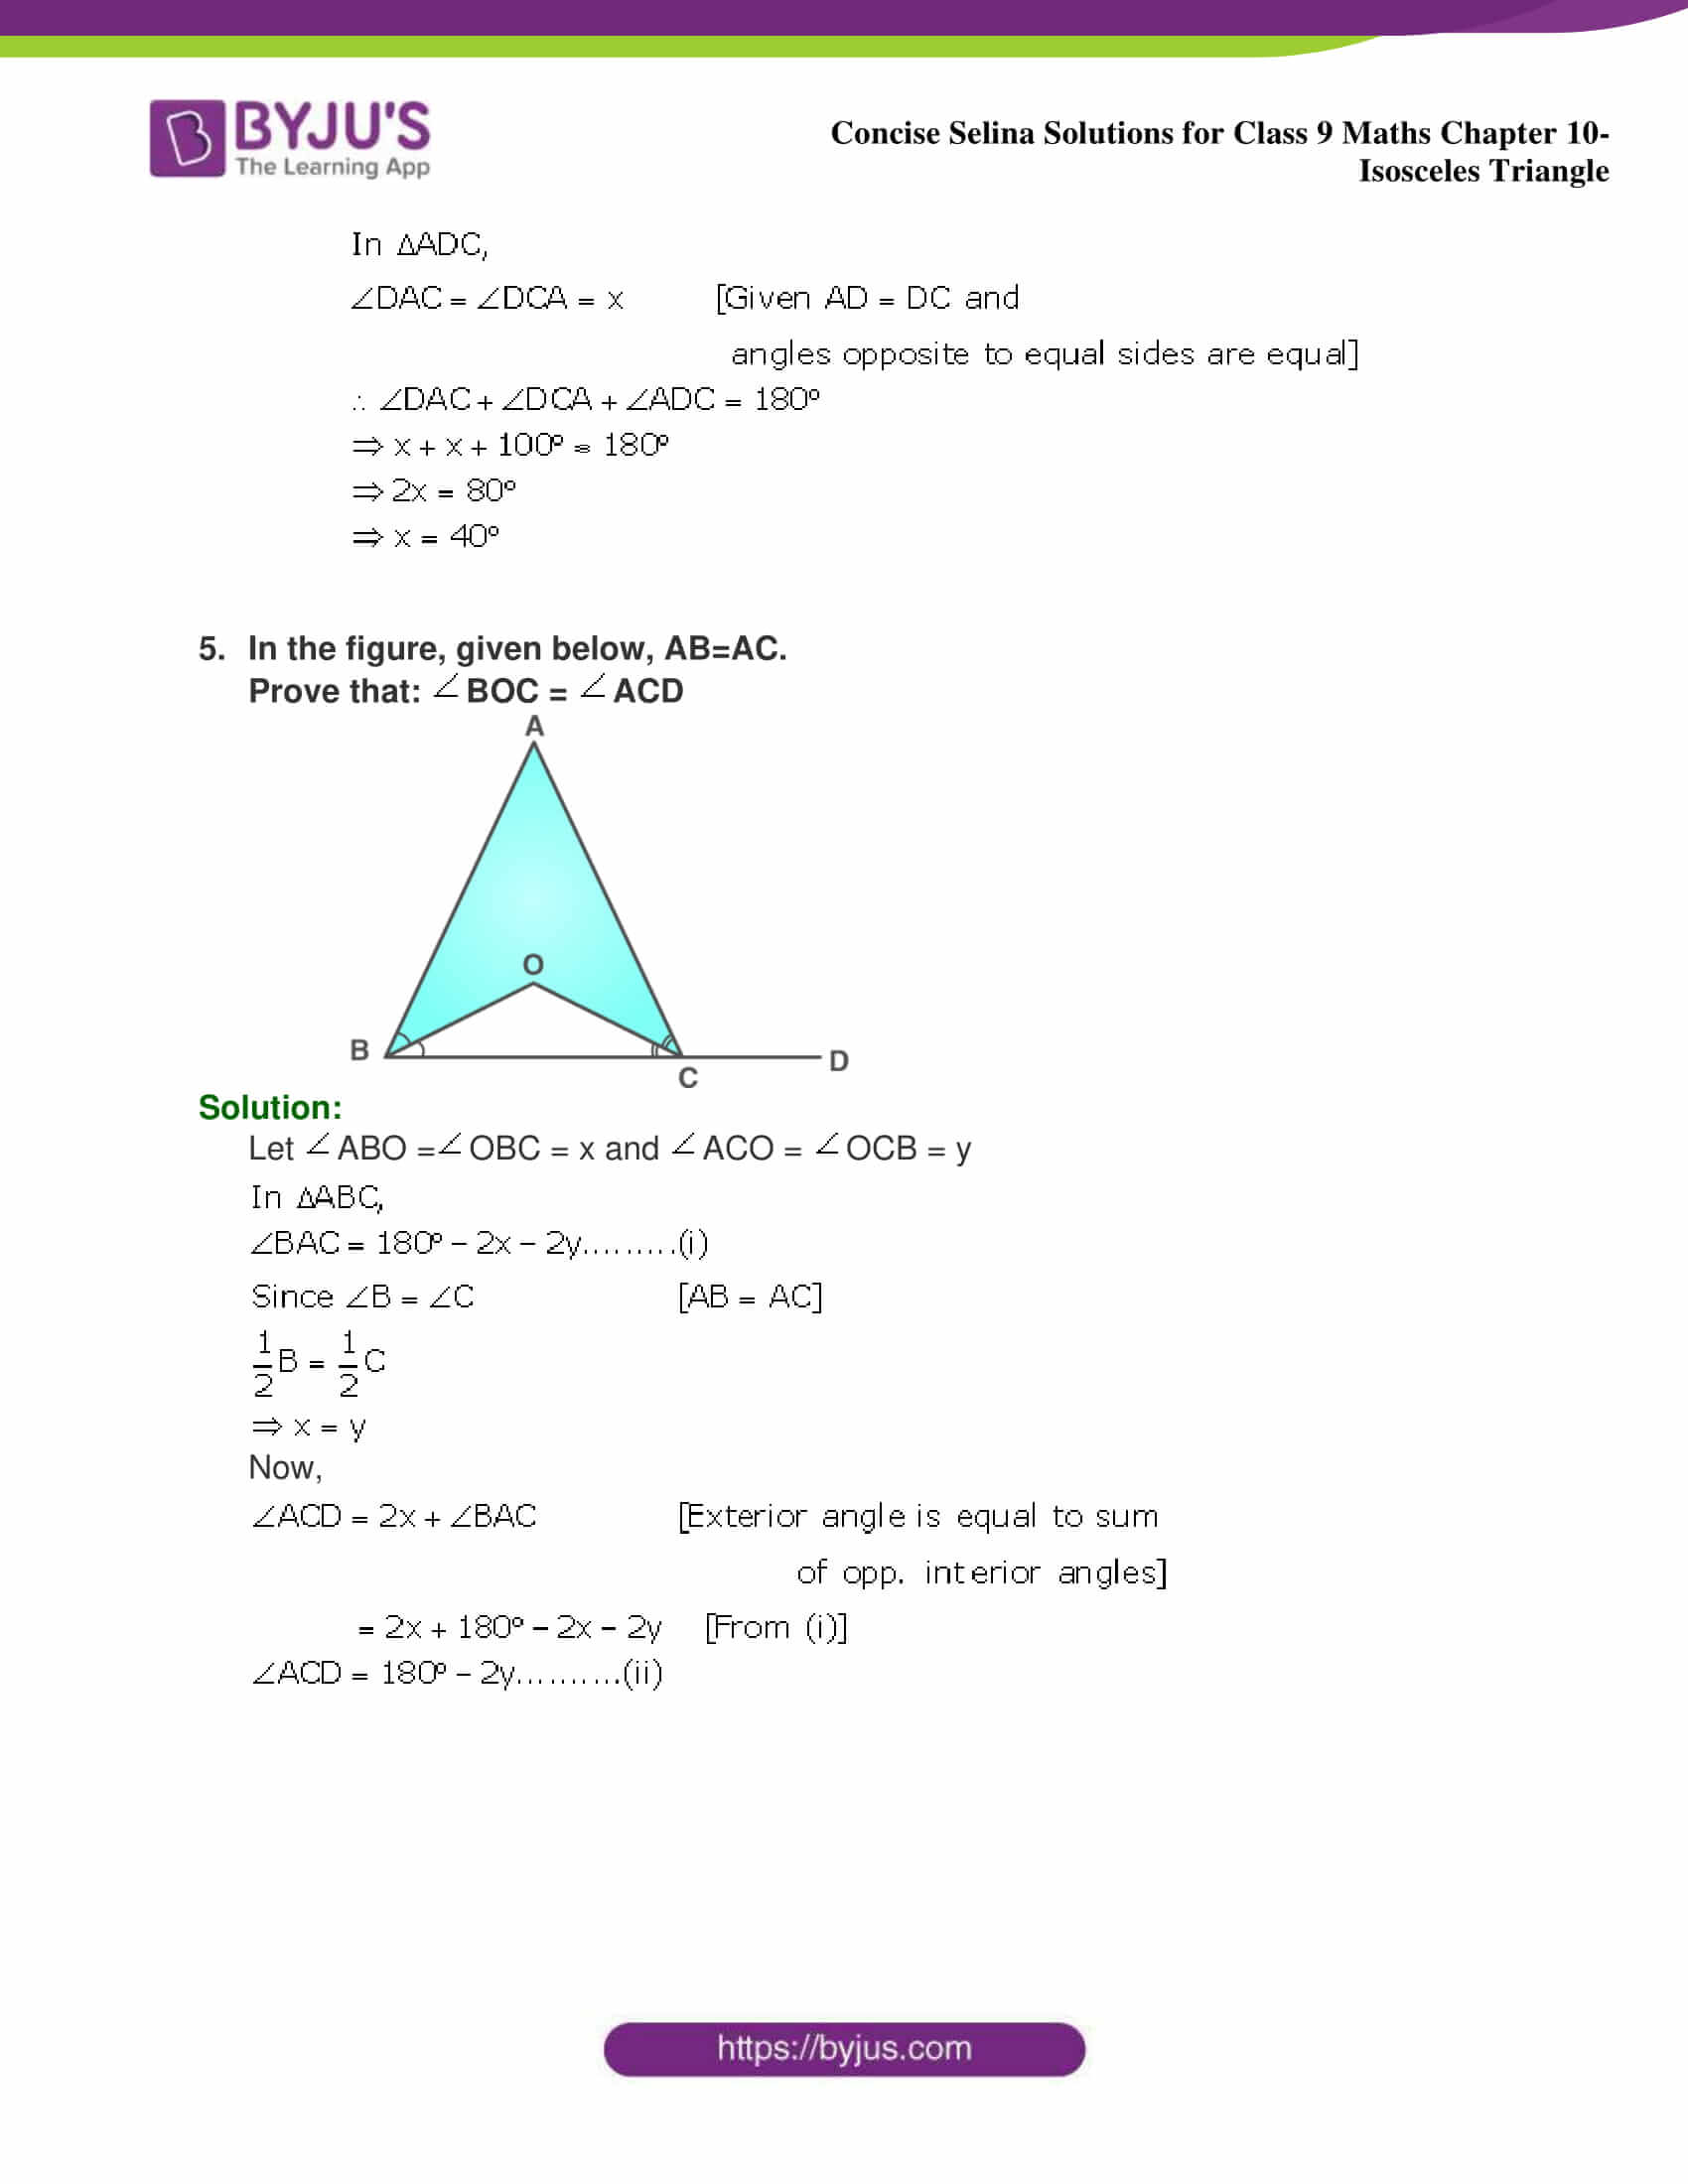 selina Solutions for Class 9 Maths Chapter 10 part 06